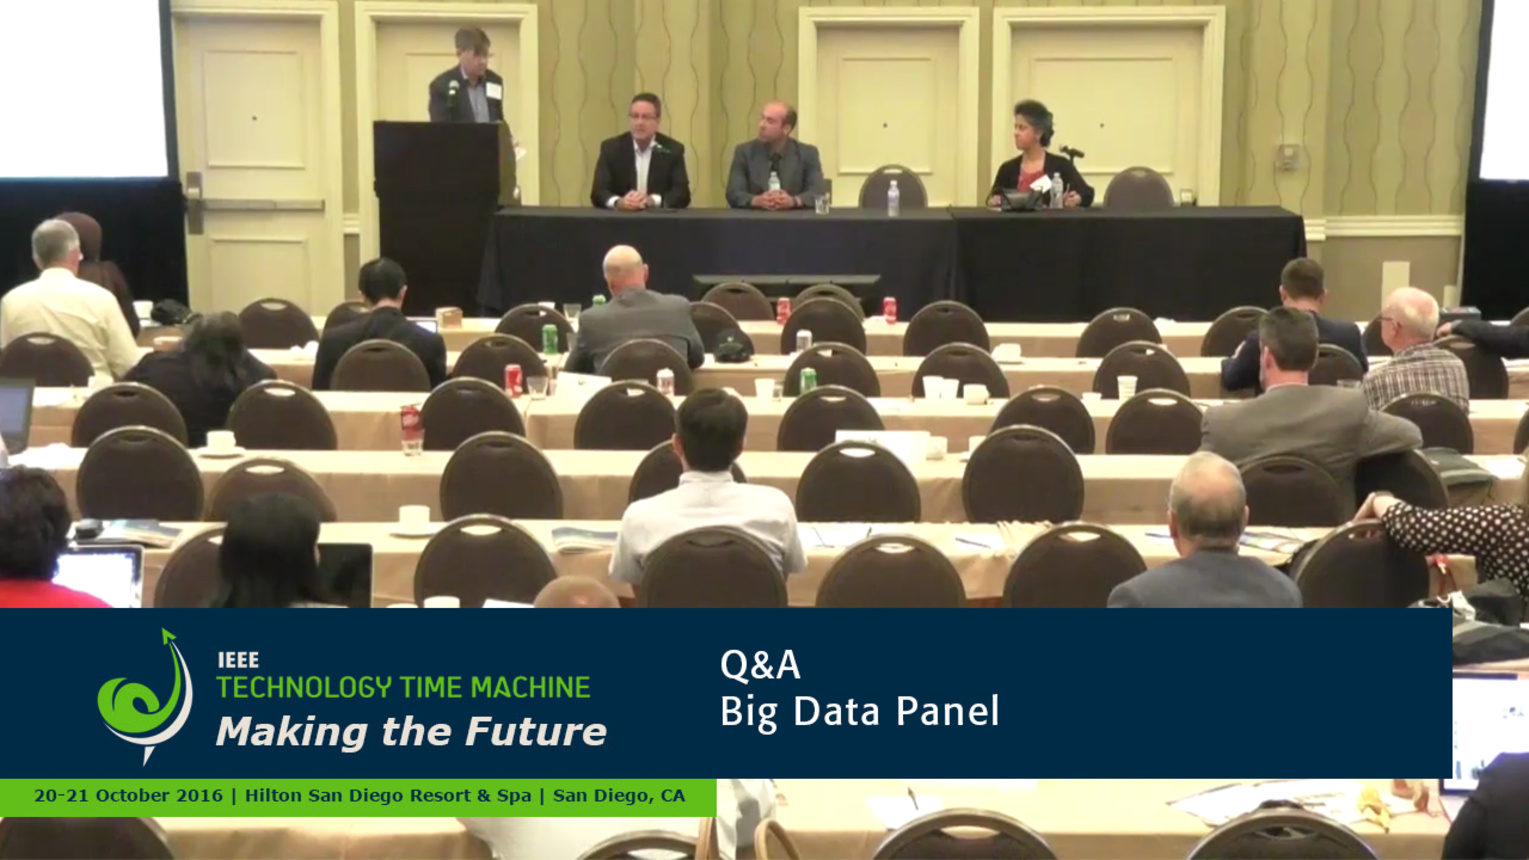 Panel Q&A - Big Data: 2016 Technology Time Machine